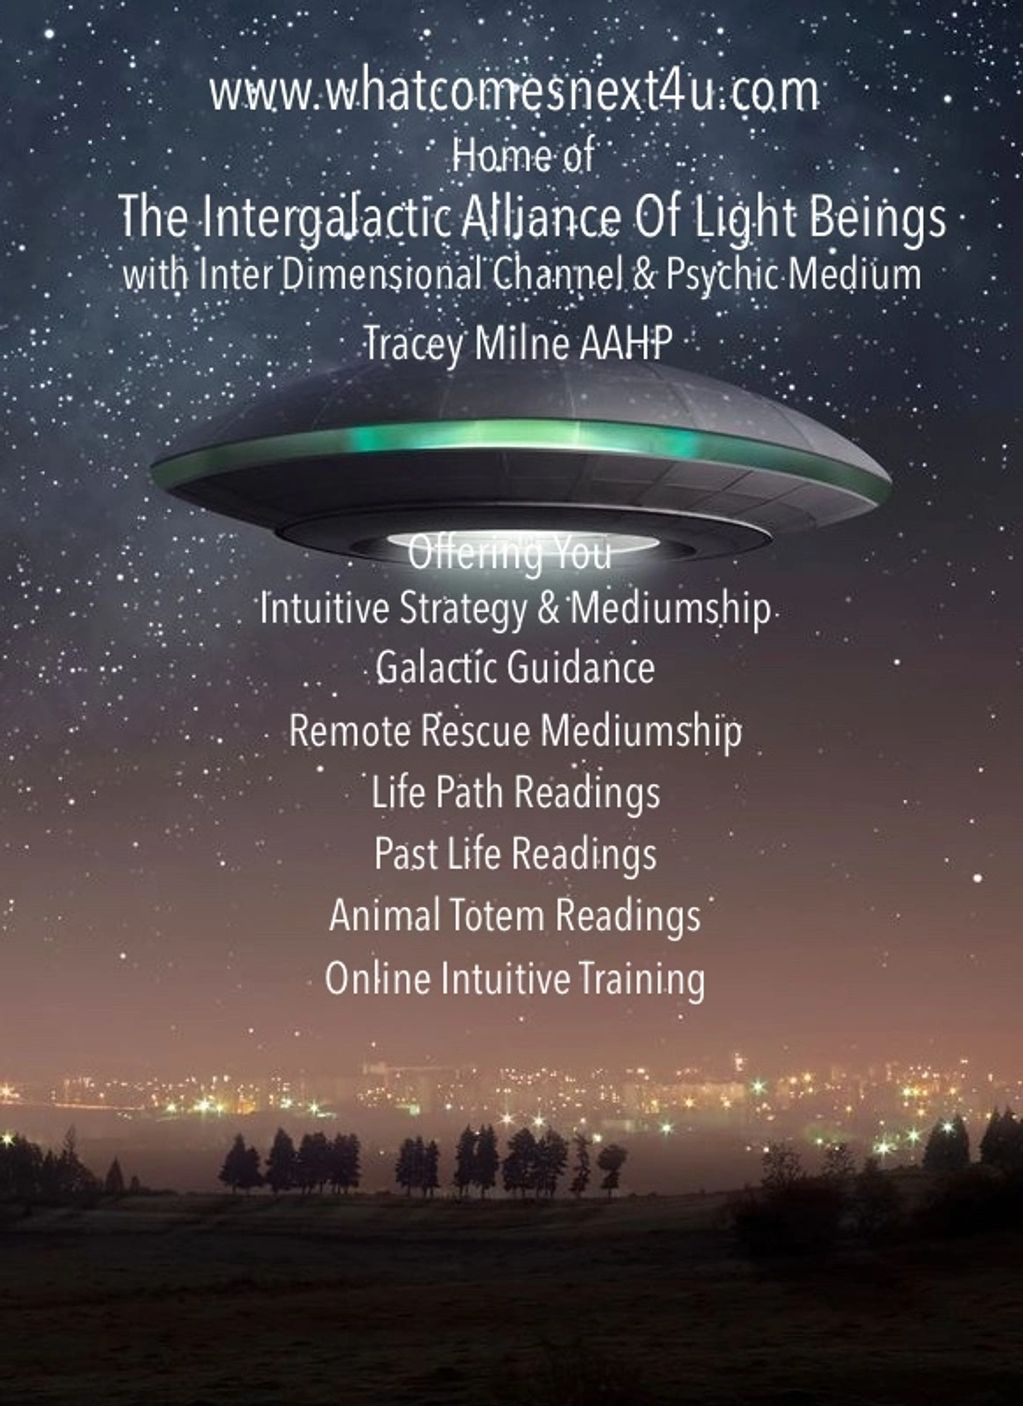 Home of the Intergalactic Alliance Of Light Beings with Canadian Psychic Medium Tracey Milne AAHP